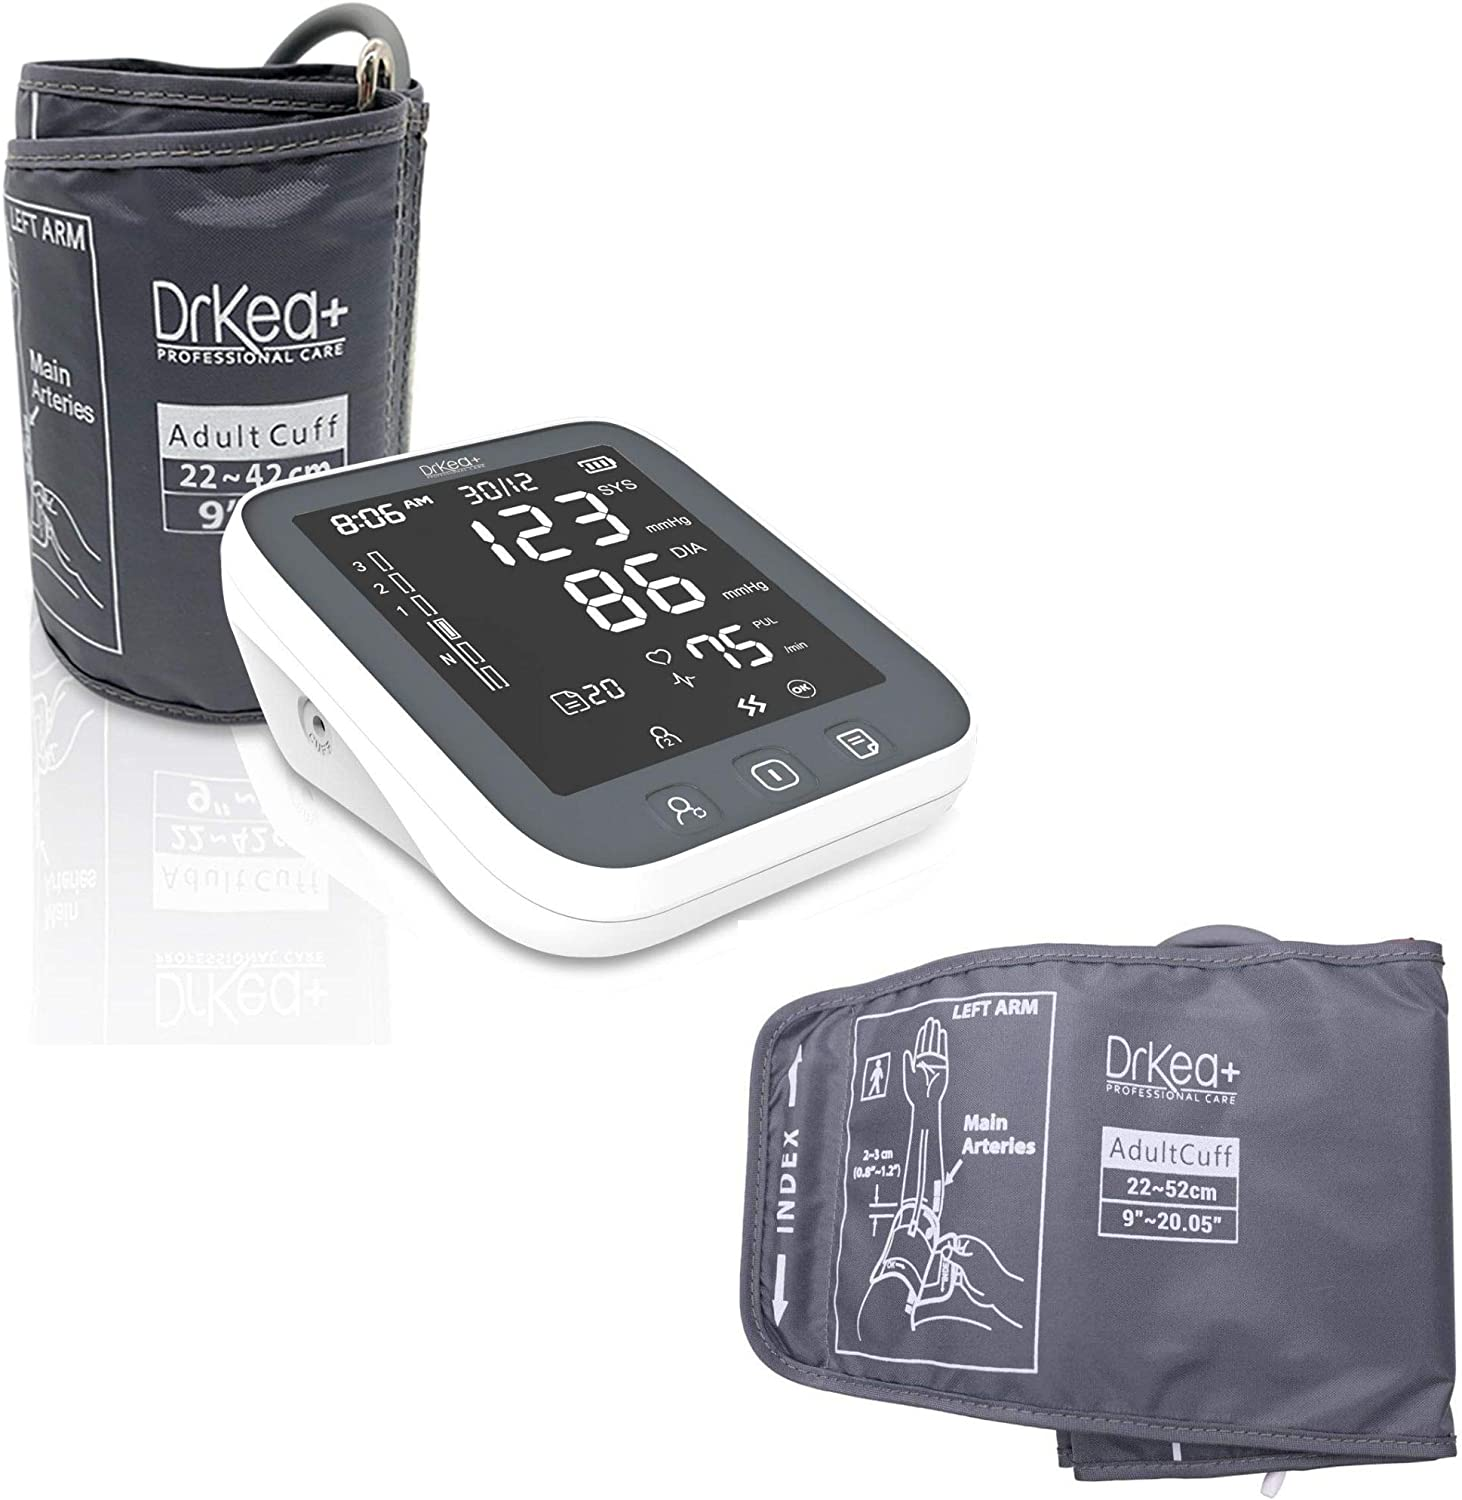 "DrKea K990i Blood Pressure Monitor Upper Arm and Extra Large Cuff Strap for Upper Arm Bundle - Fits 9"" to 20.5"" Upper Arm Size"